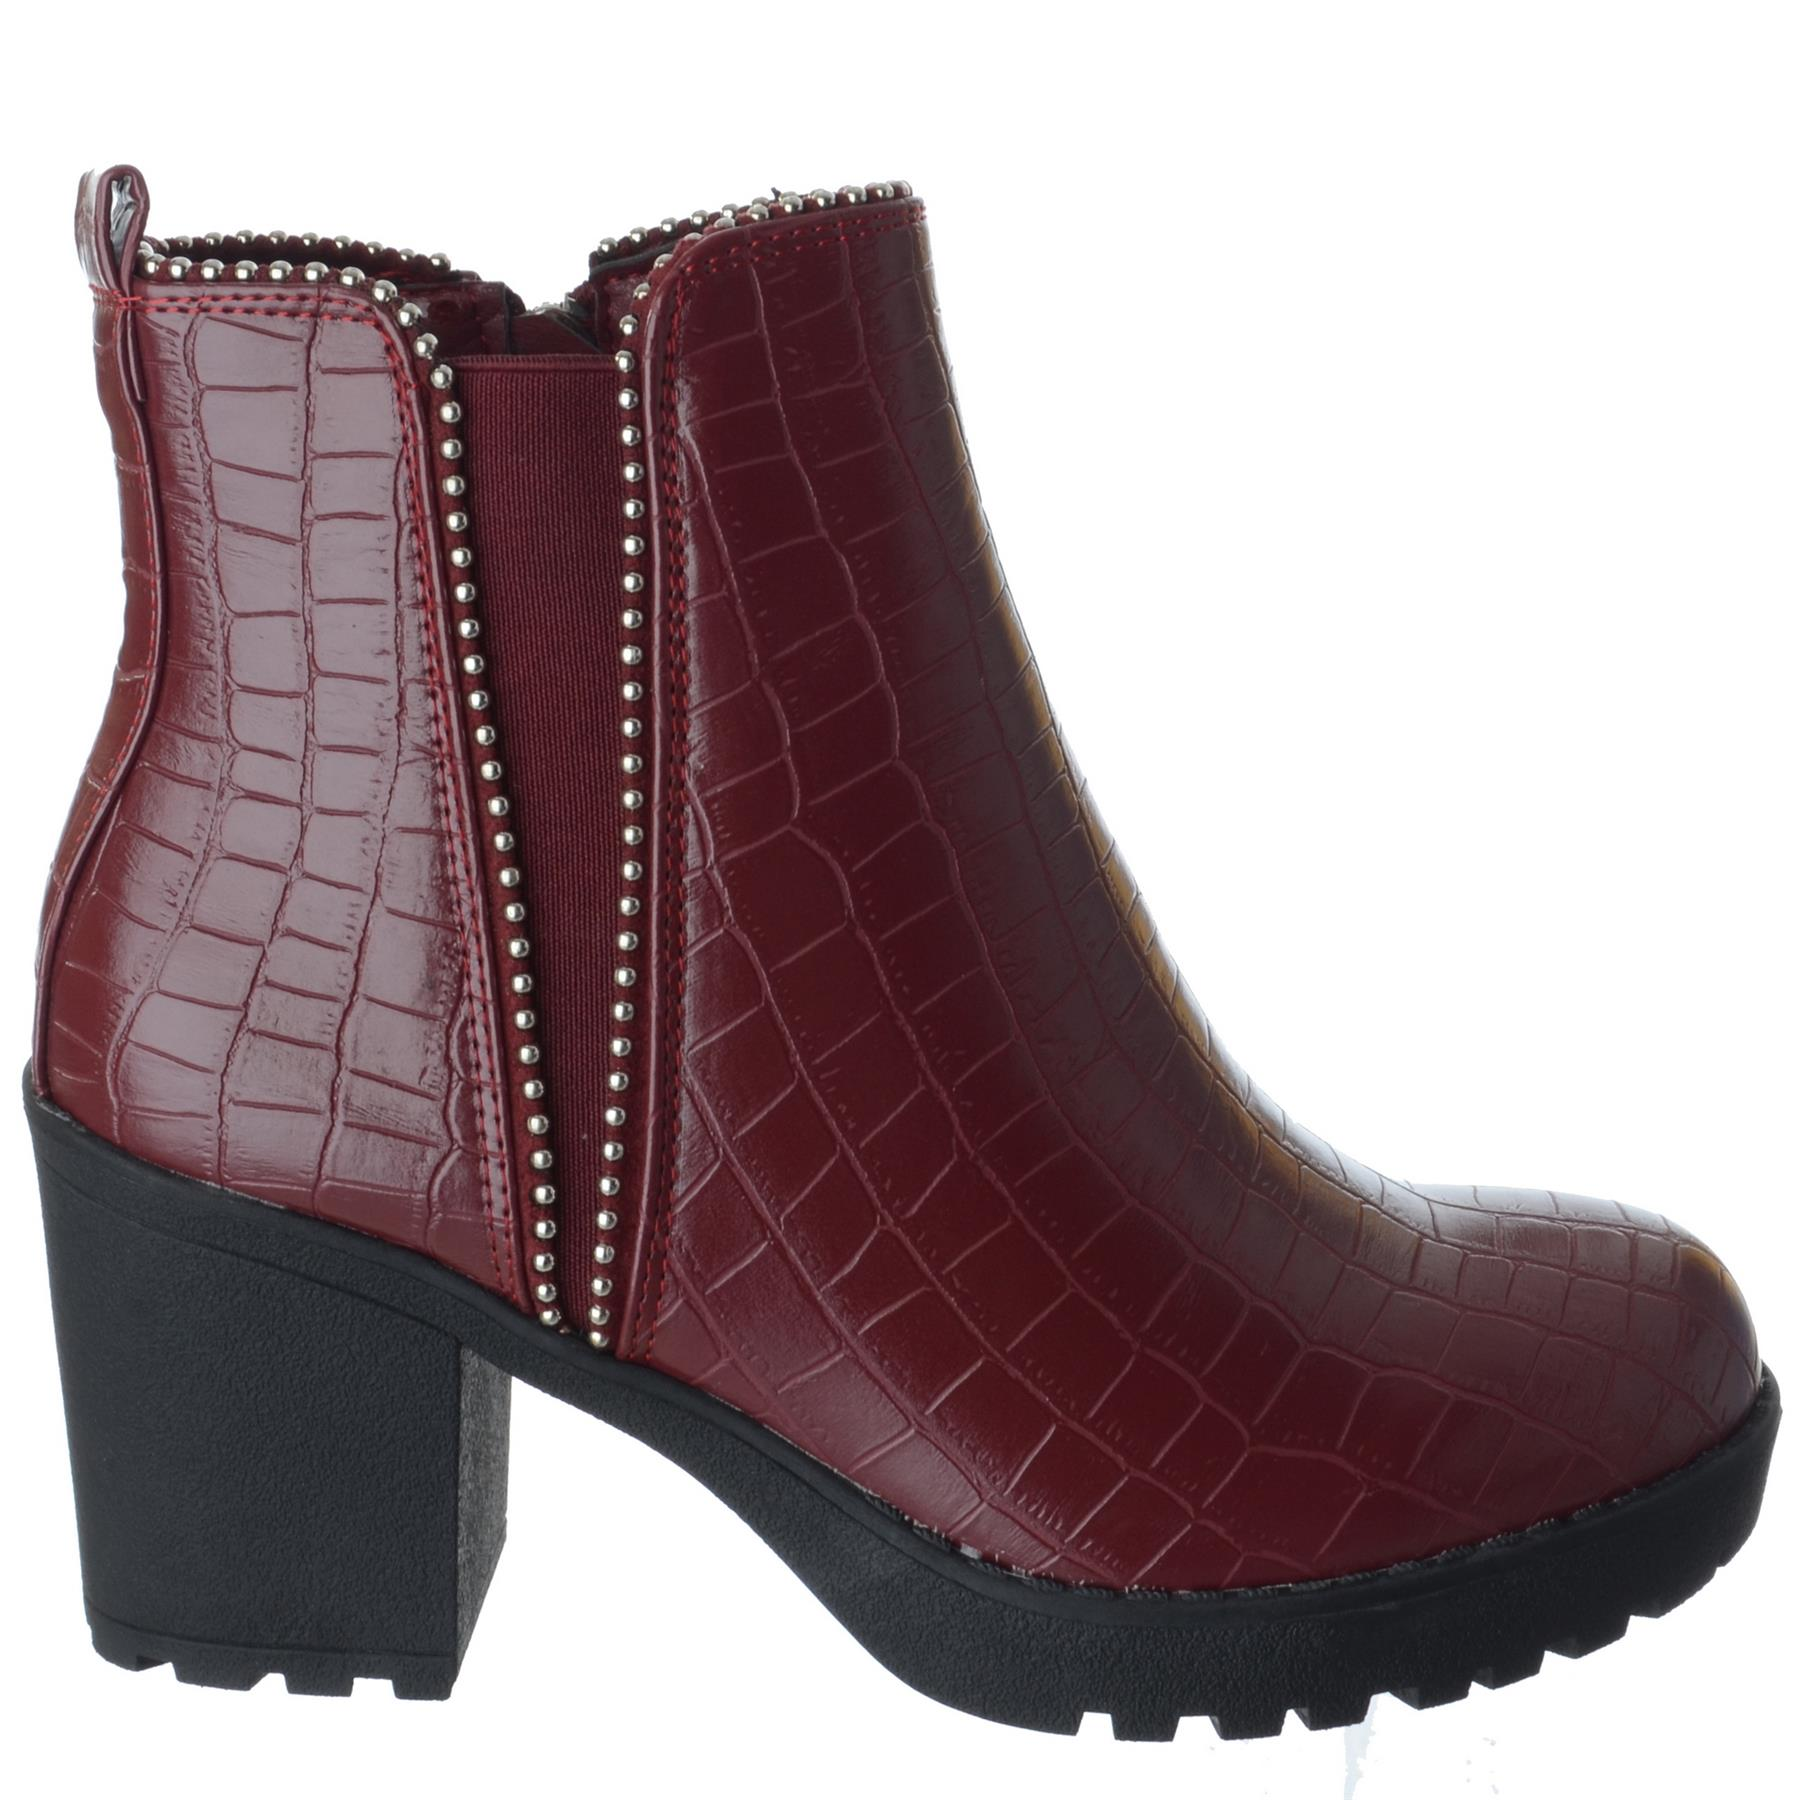 Womens Mid High Block Heel Zip Up Studded Ladies Chelsea Ankle Boots Shoes Size